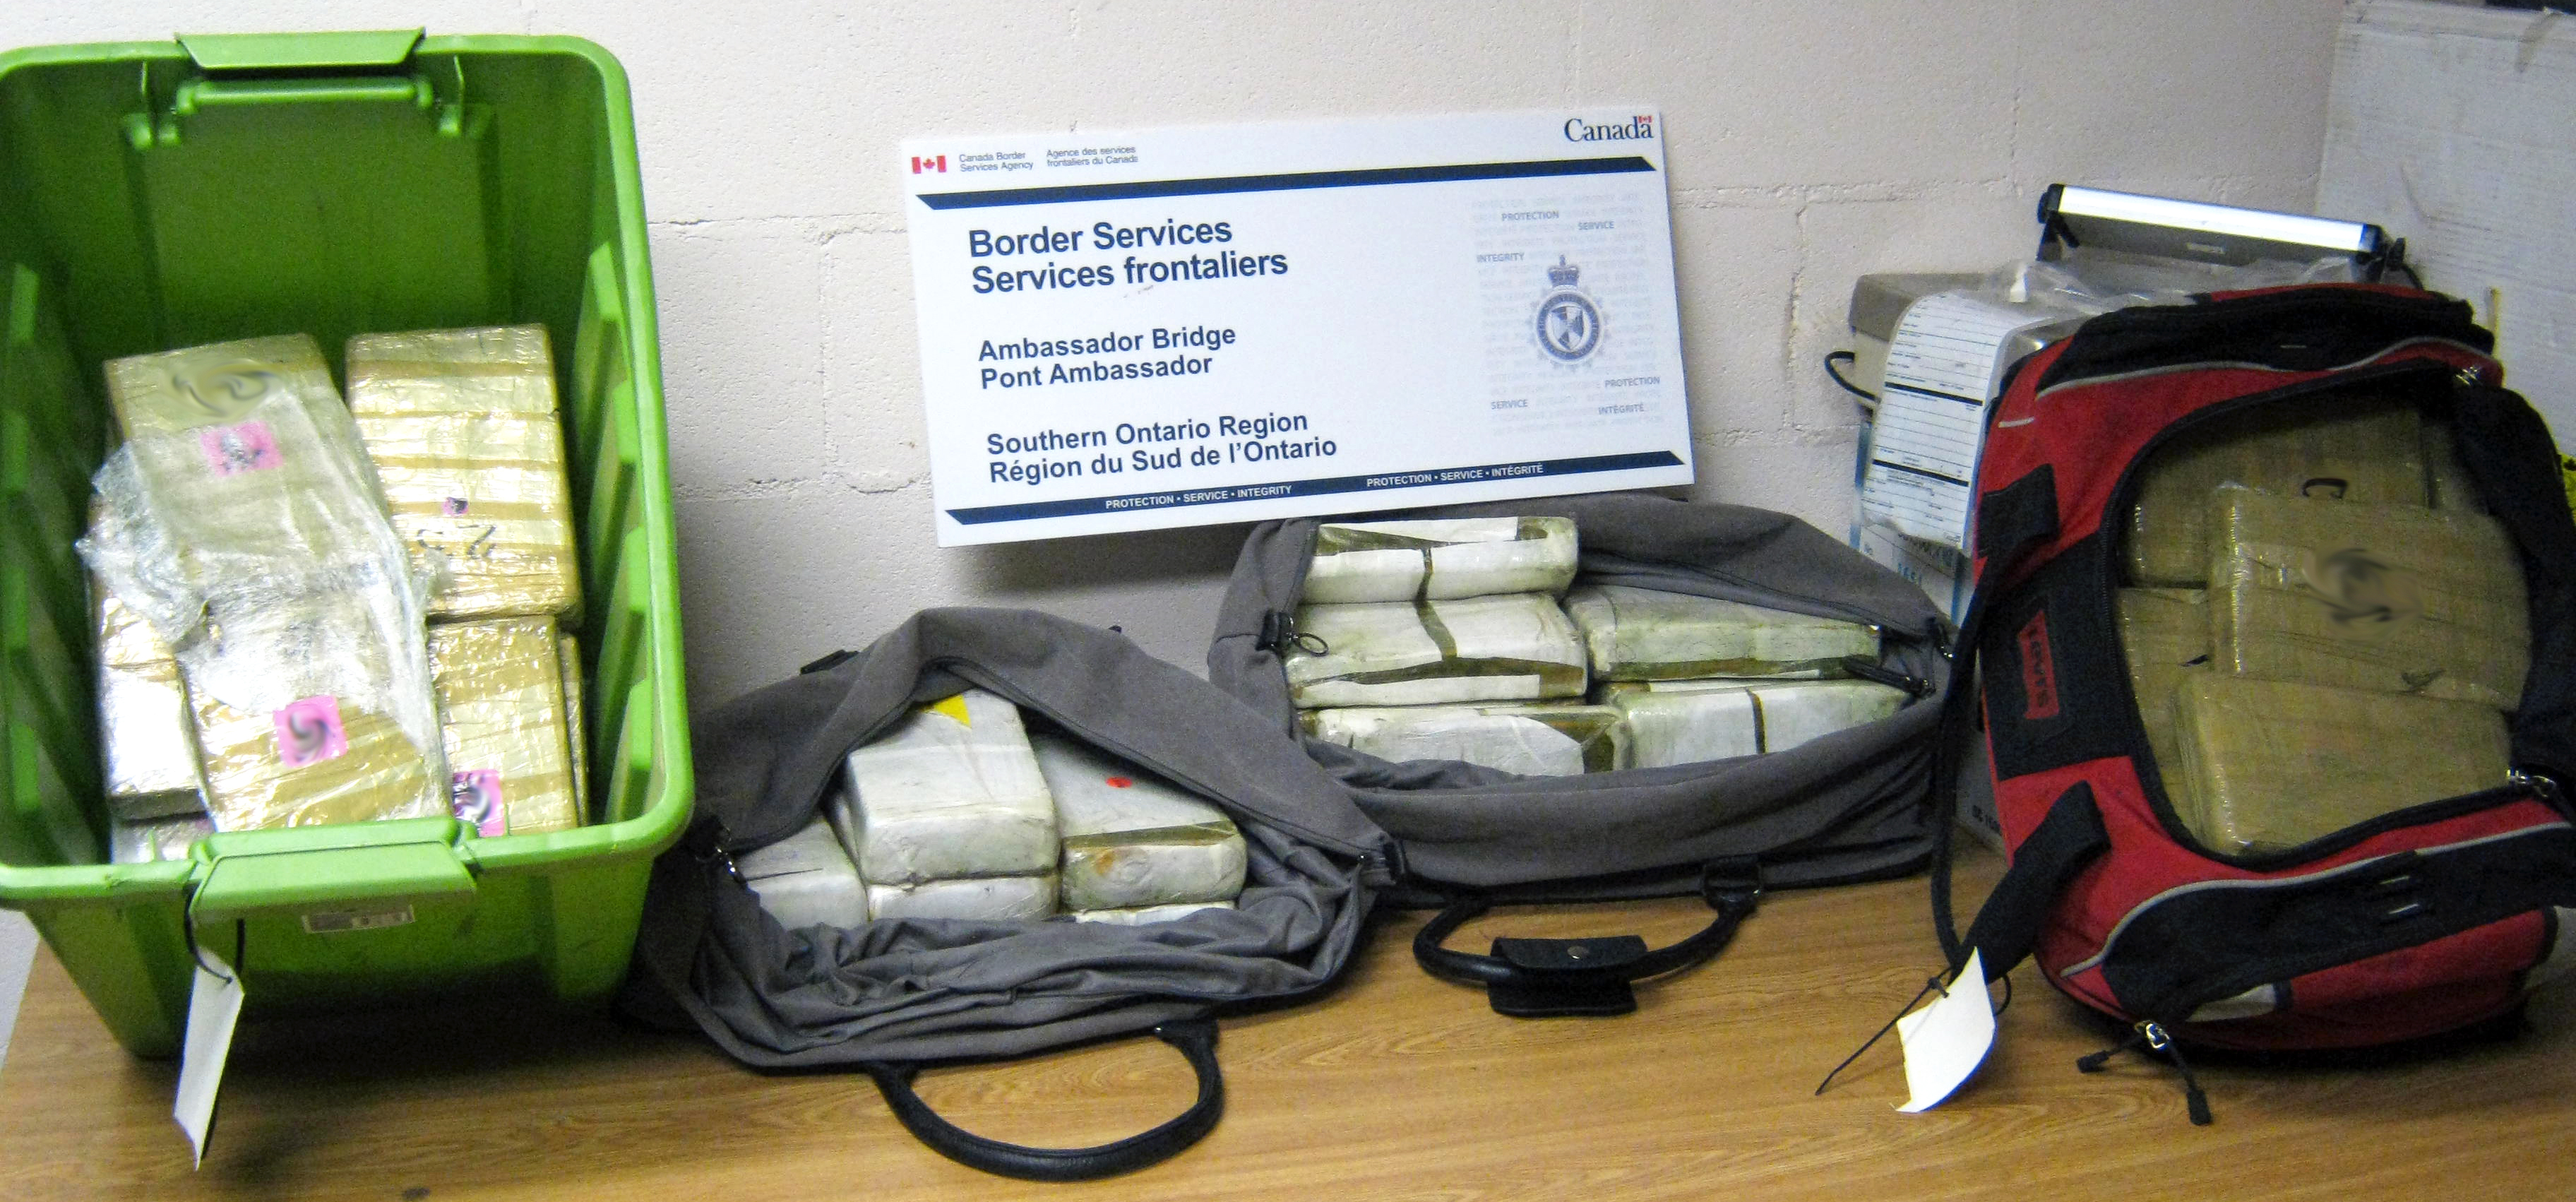 Cocaine Seizure At Ambassador Bridge